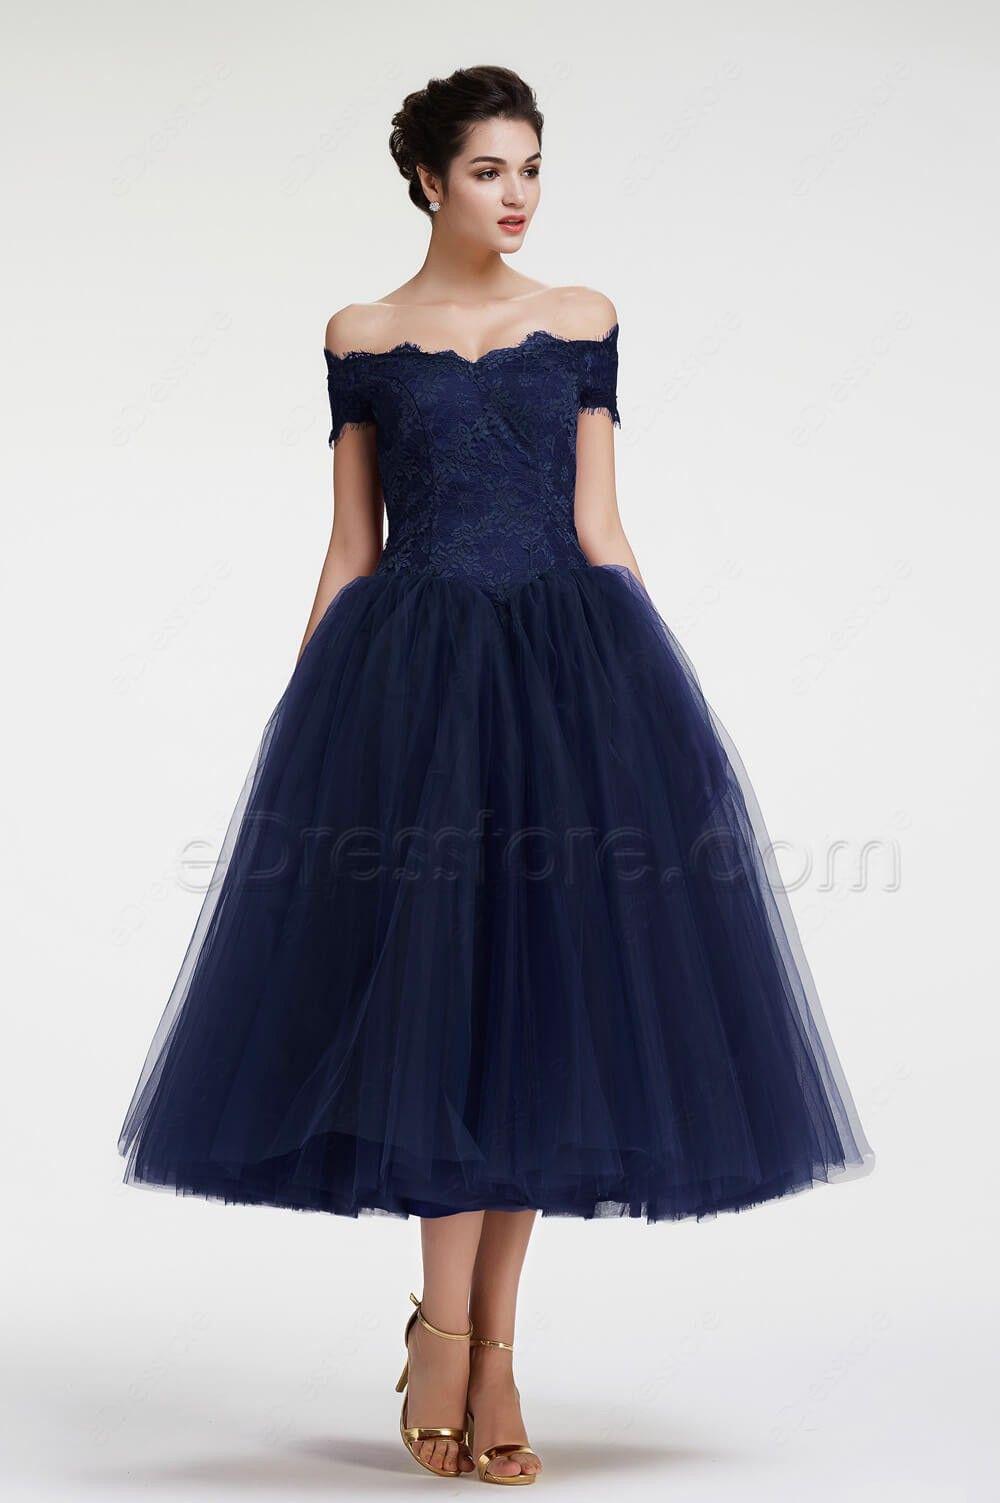 Navy blue off the shoulder ball gown vintage evening dress tea